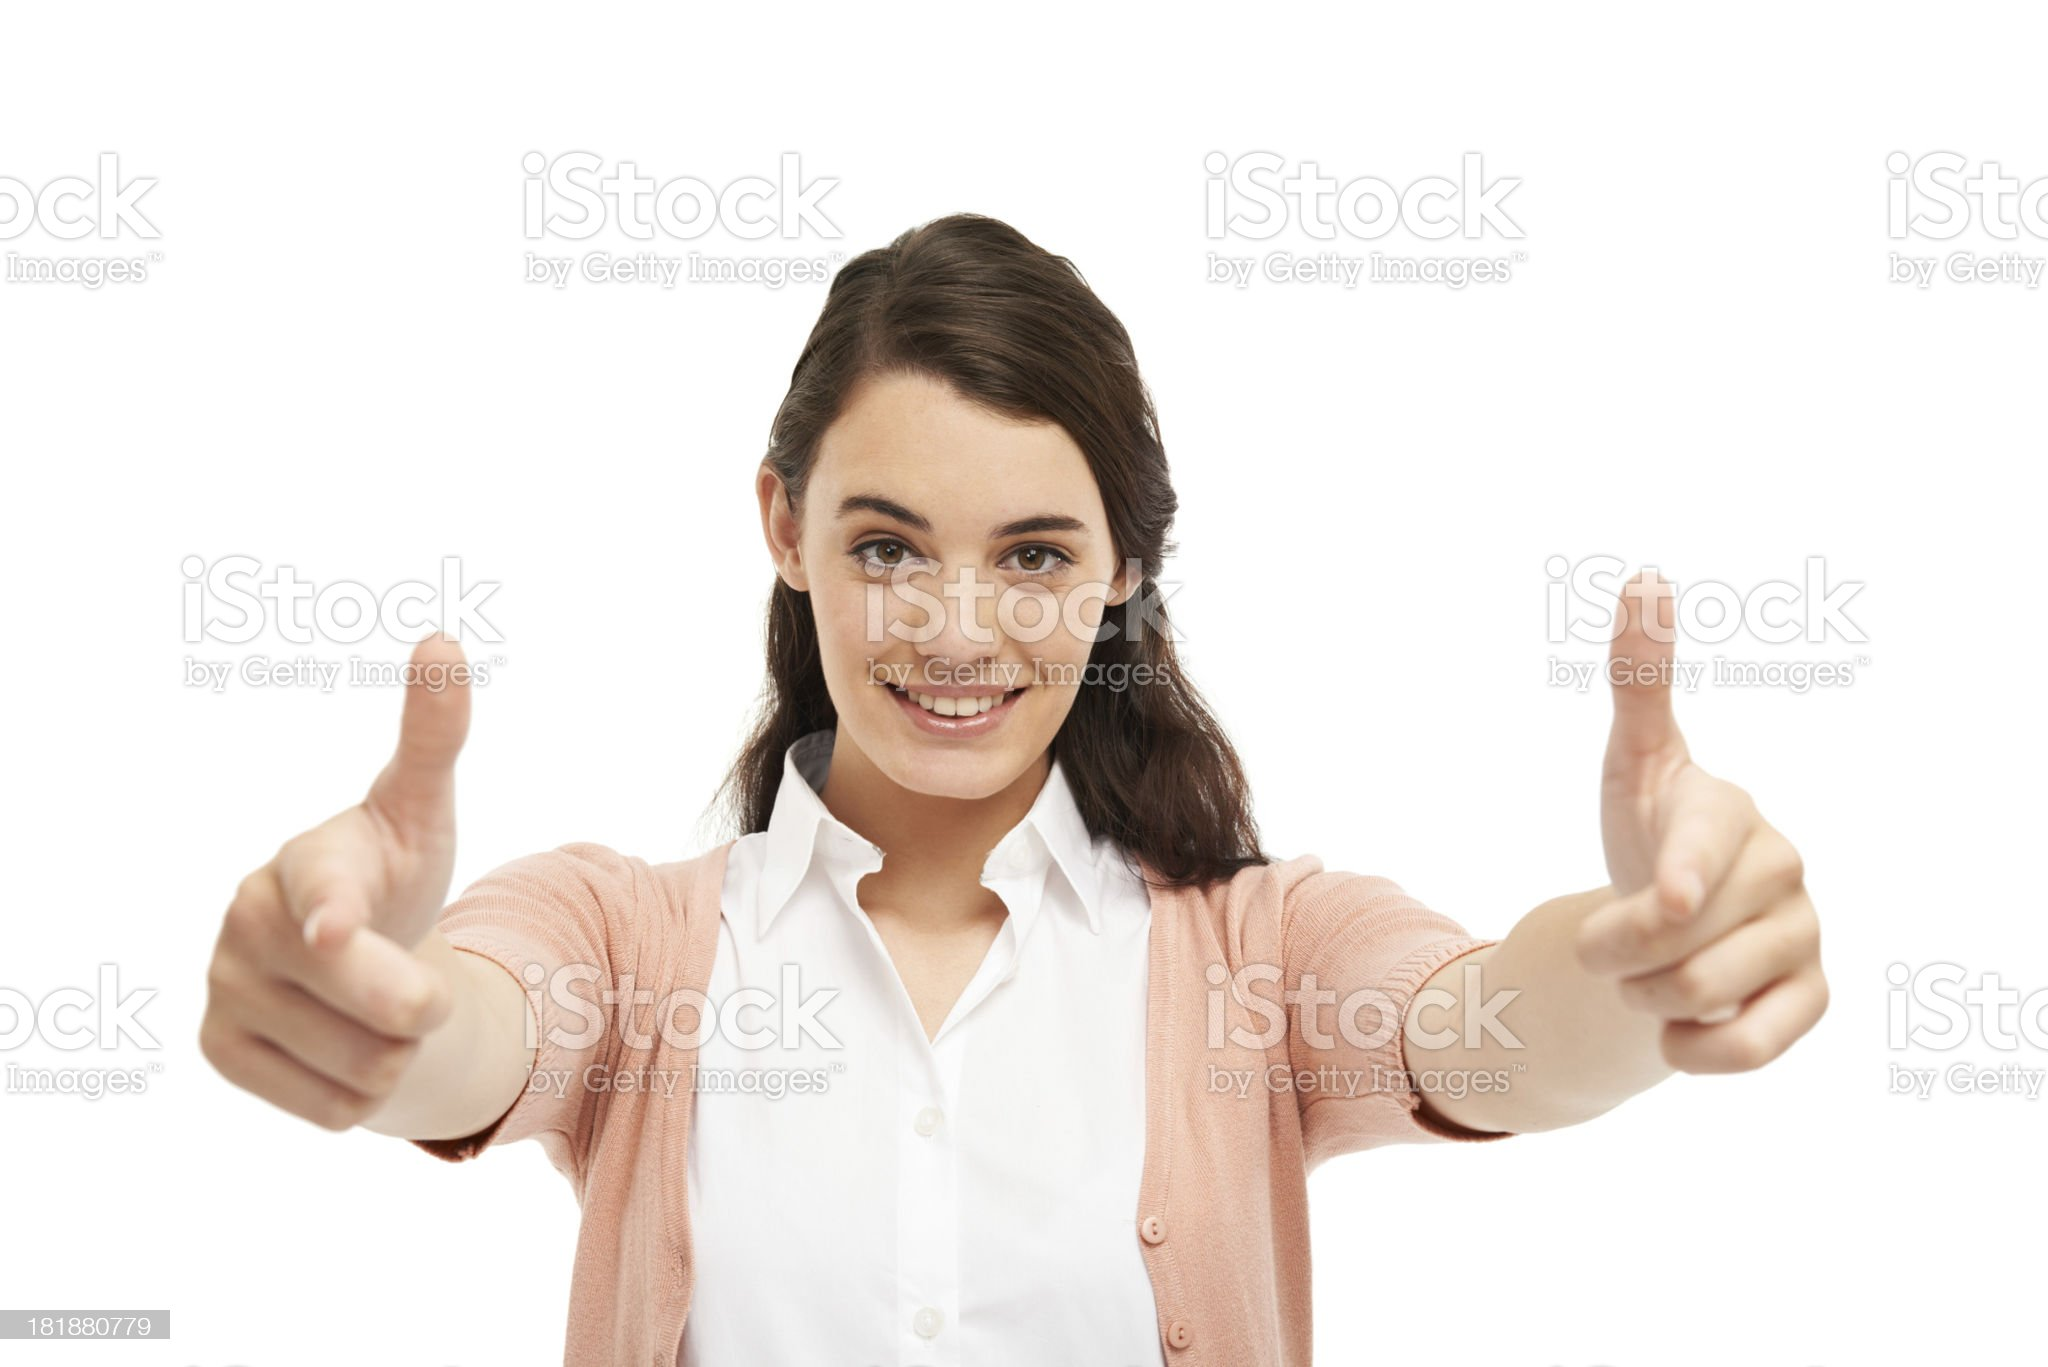 Pointing with confidence royalty-free stock photo